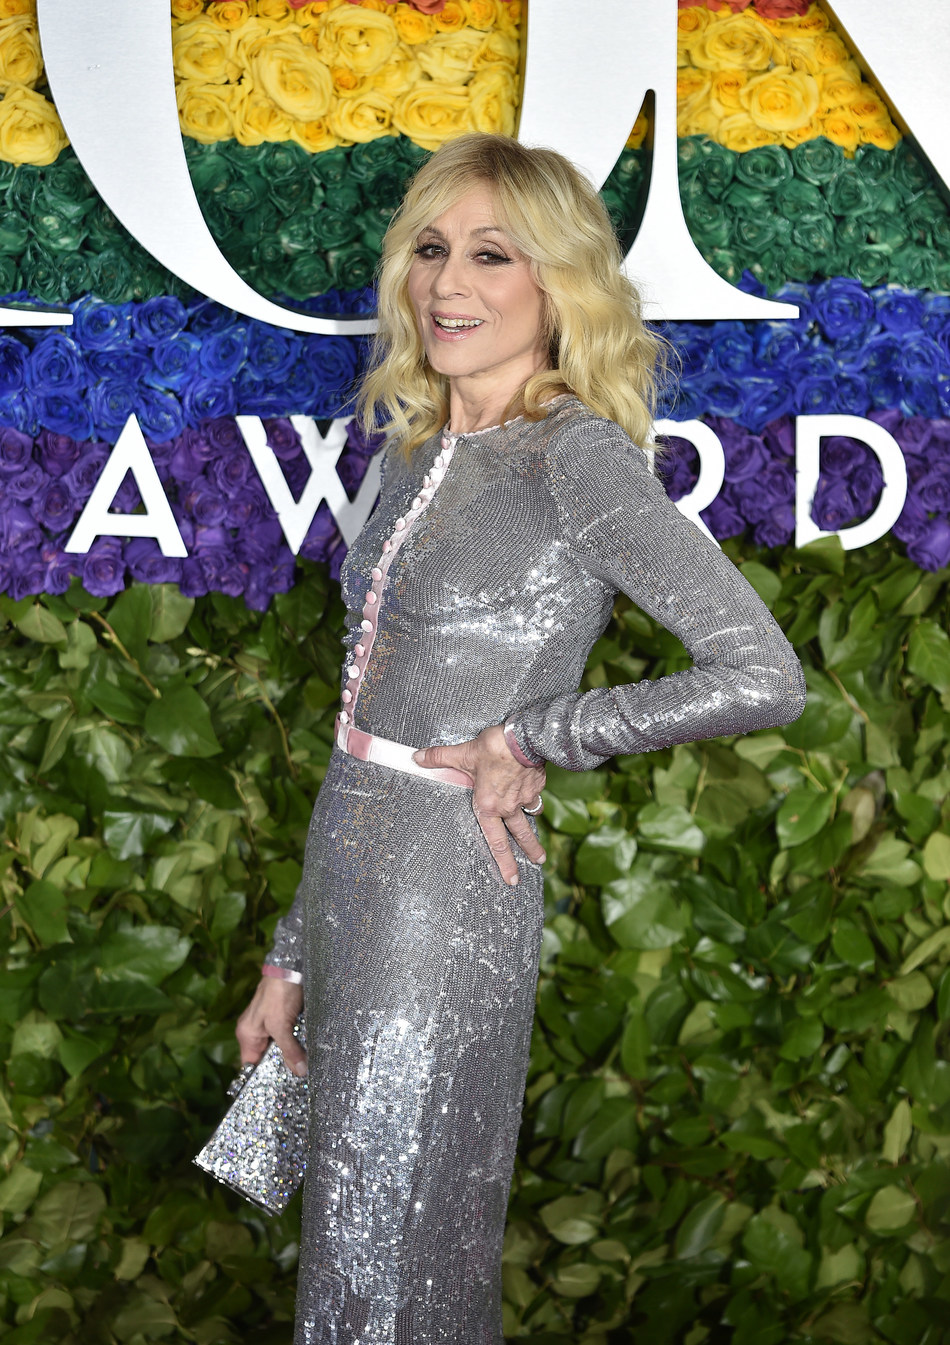 Judith Light, a 1970 Carnegie Mellon University graduate, received this year's Isabelle Stevenson Tony Award for her advocacy to end HIV/AIDS and her support for the LGBTQ+ community. (Photo credit: Carnegie Mellon University)